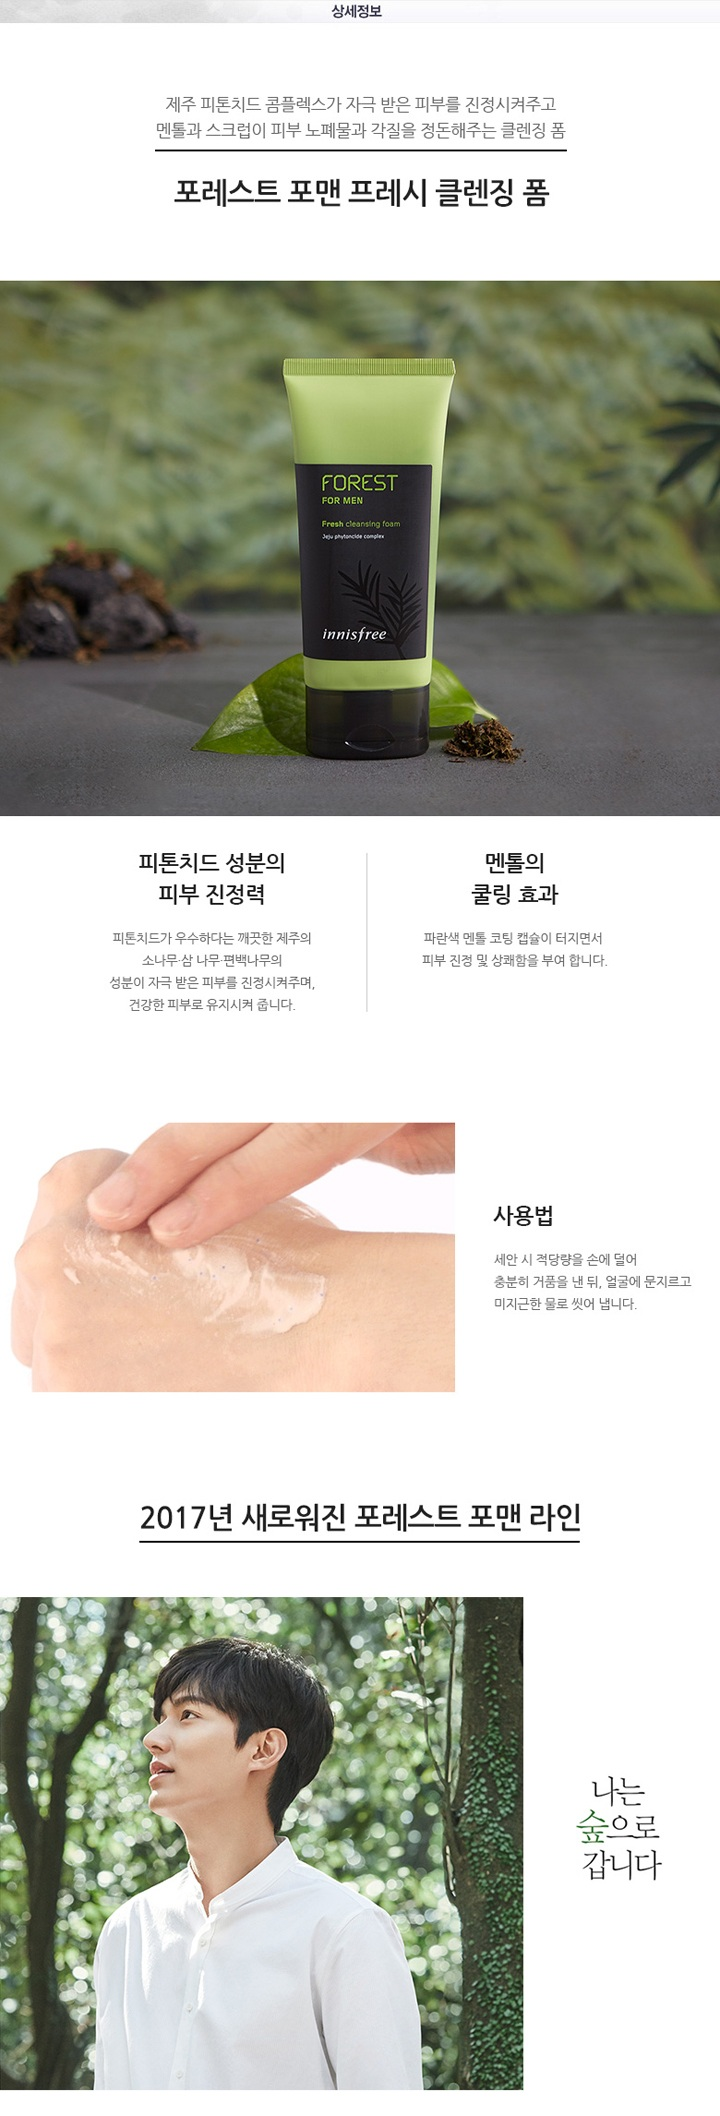 Innisfree Forest For Men Fresh Cleansing Foam korean men skincare product online shop malaysia hong kong china1